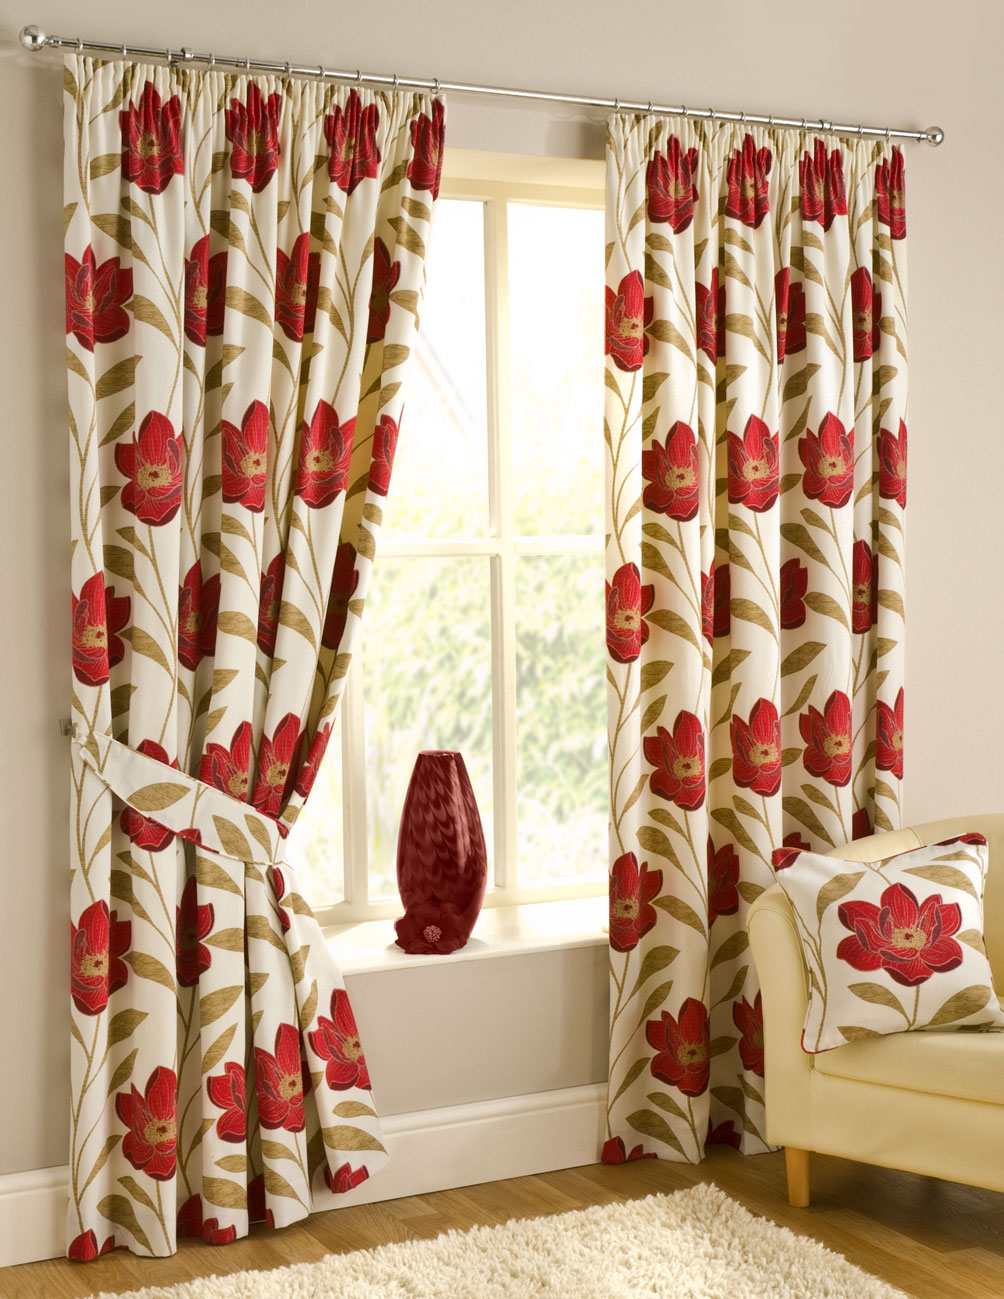 interior-inspiring-detail-of-the-curtain-with-big-red-floral-patterns-chic-types-of-drapes-to-prettify-your-interior